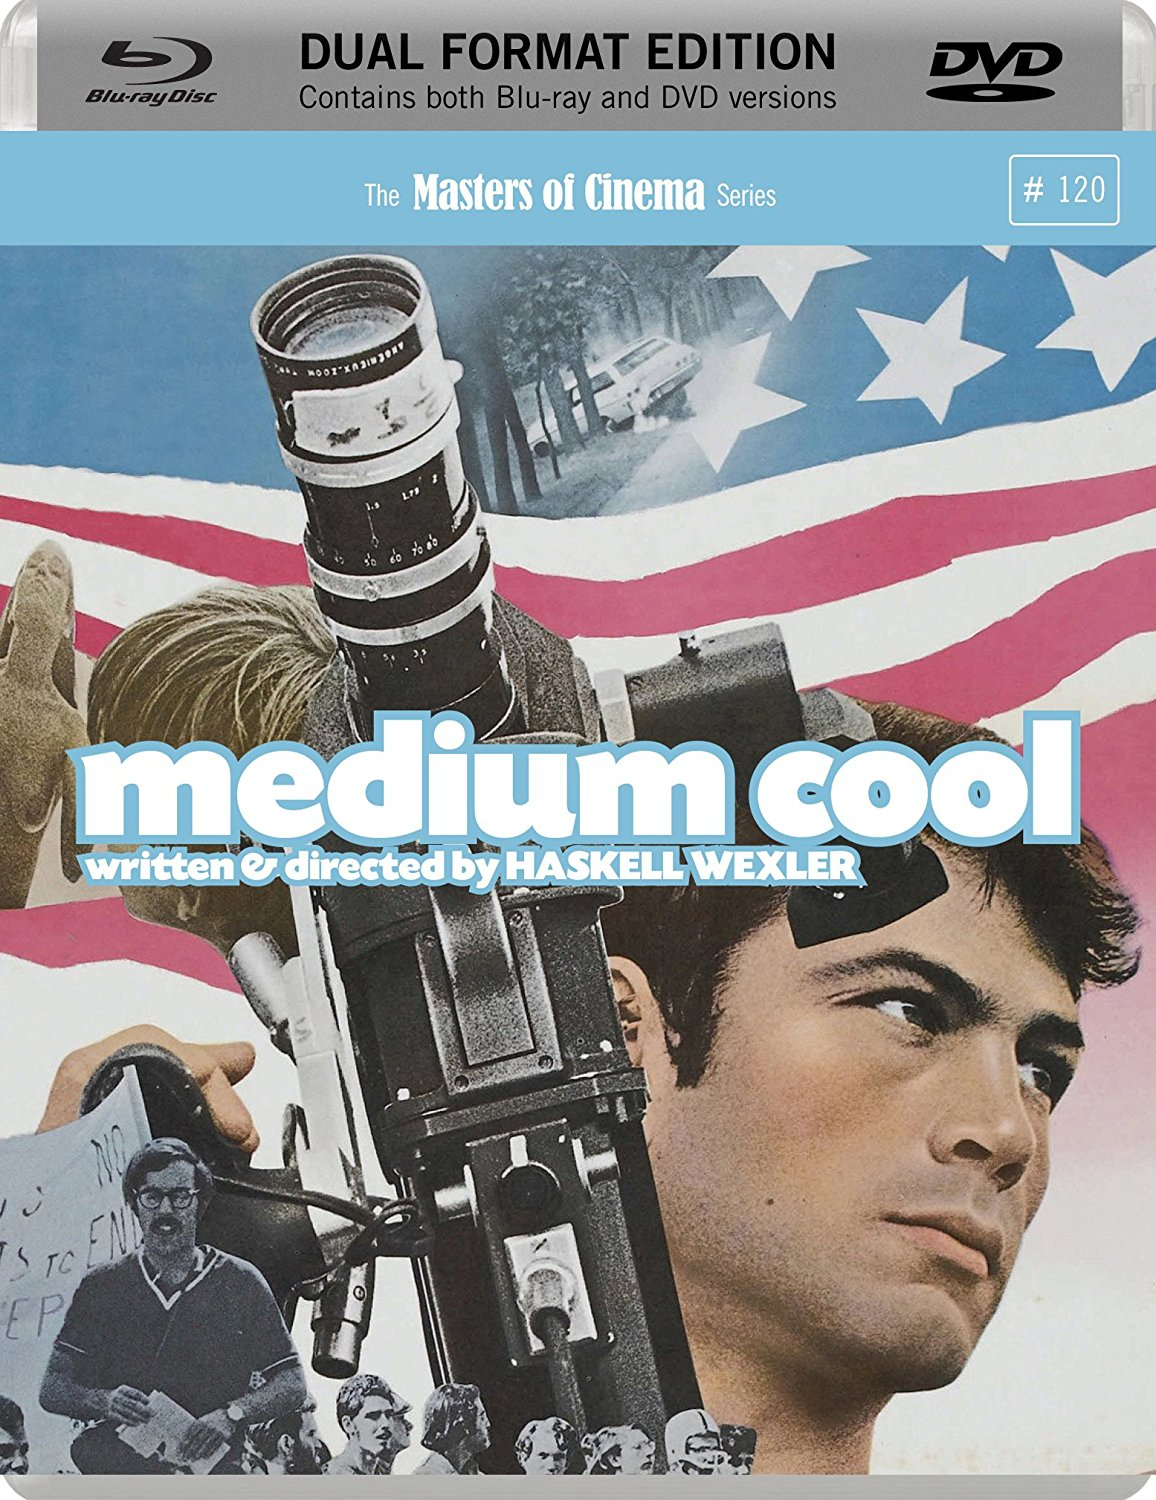 Buy Medium Cool (Dual Format Edition)